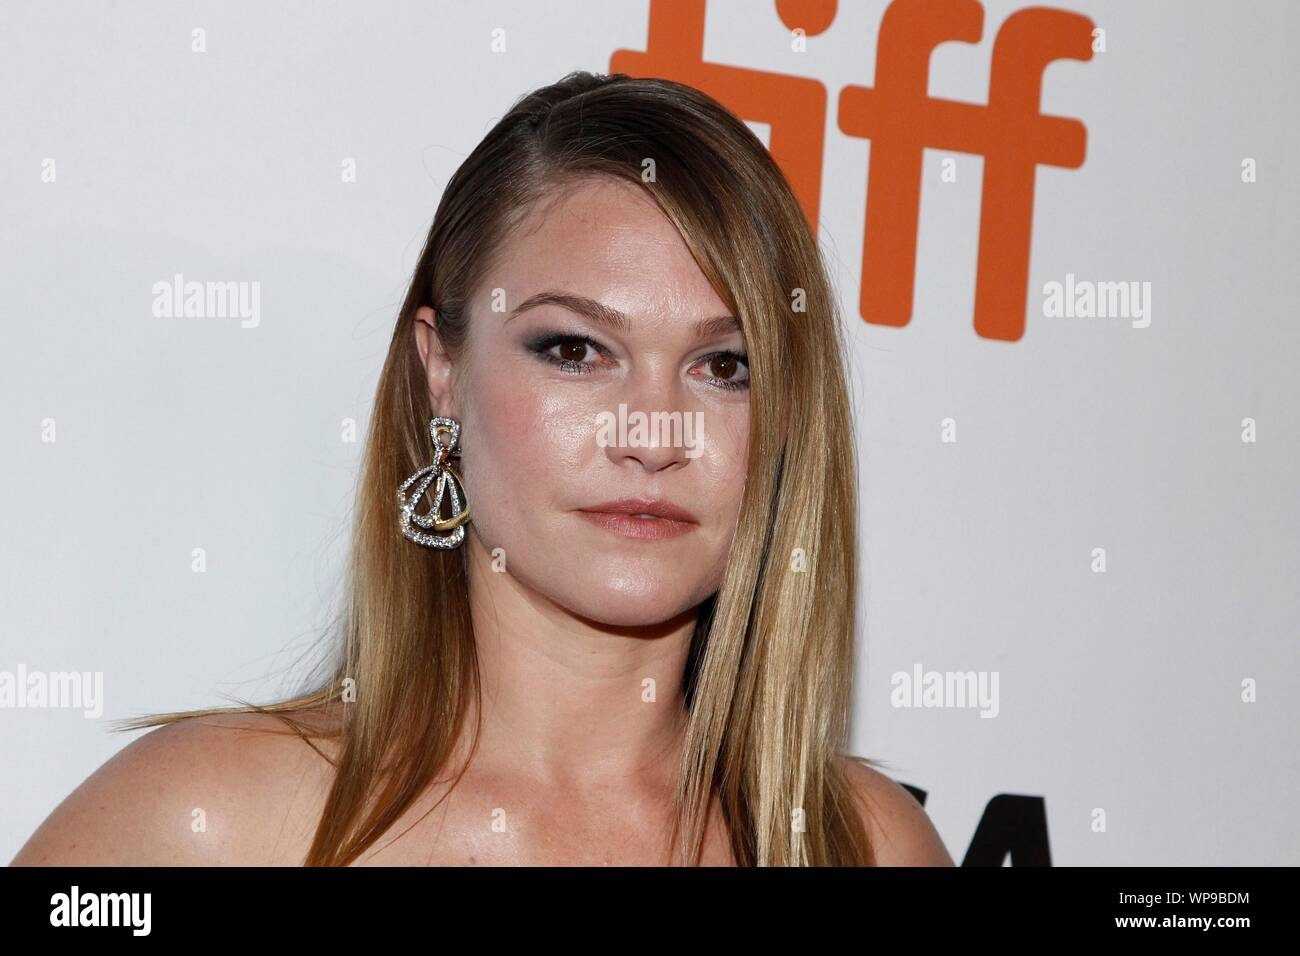 Toronto On 7th Sep 2019 Julia Stiles At Arrivals For